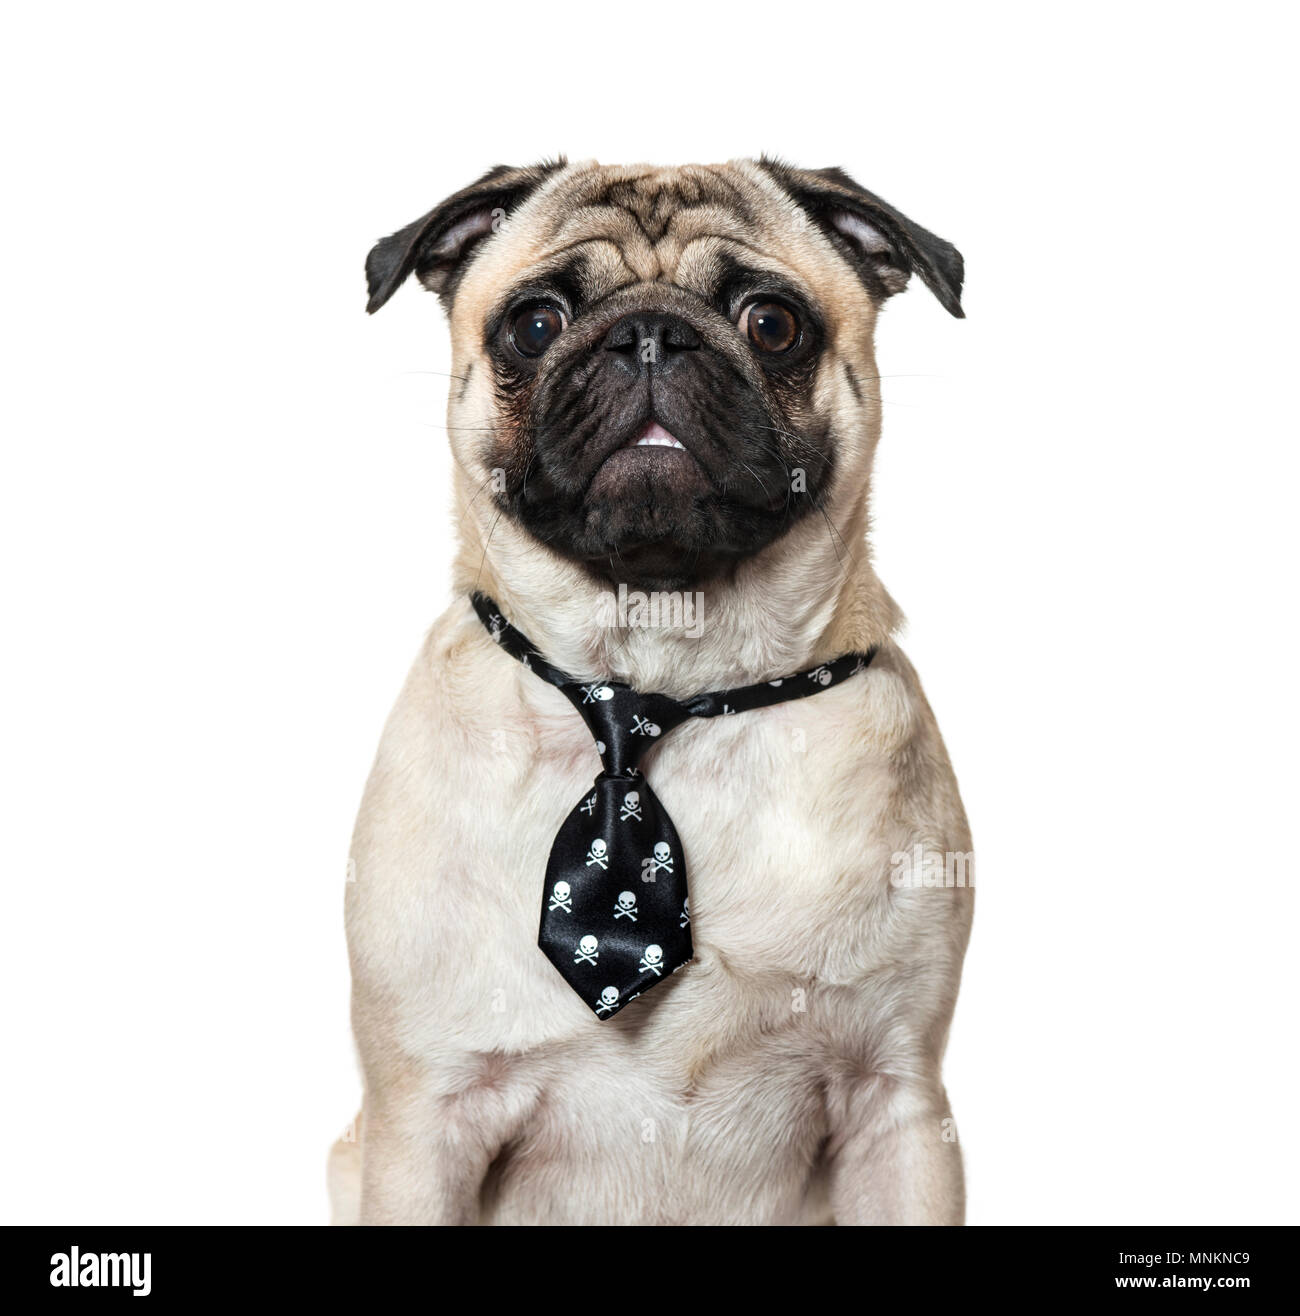 Pug wearing tie against white background - Stock Image